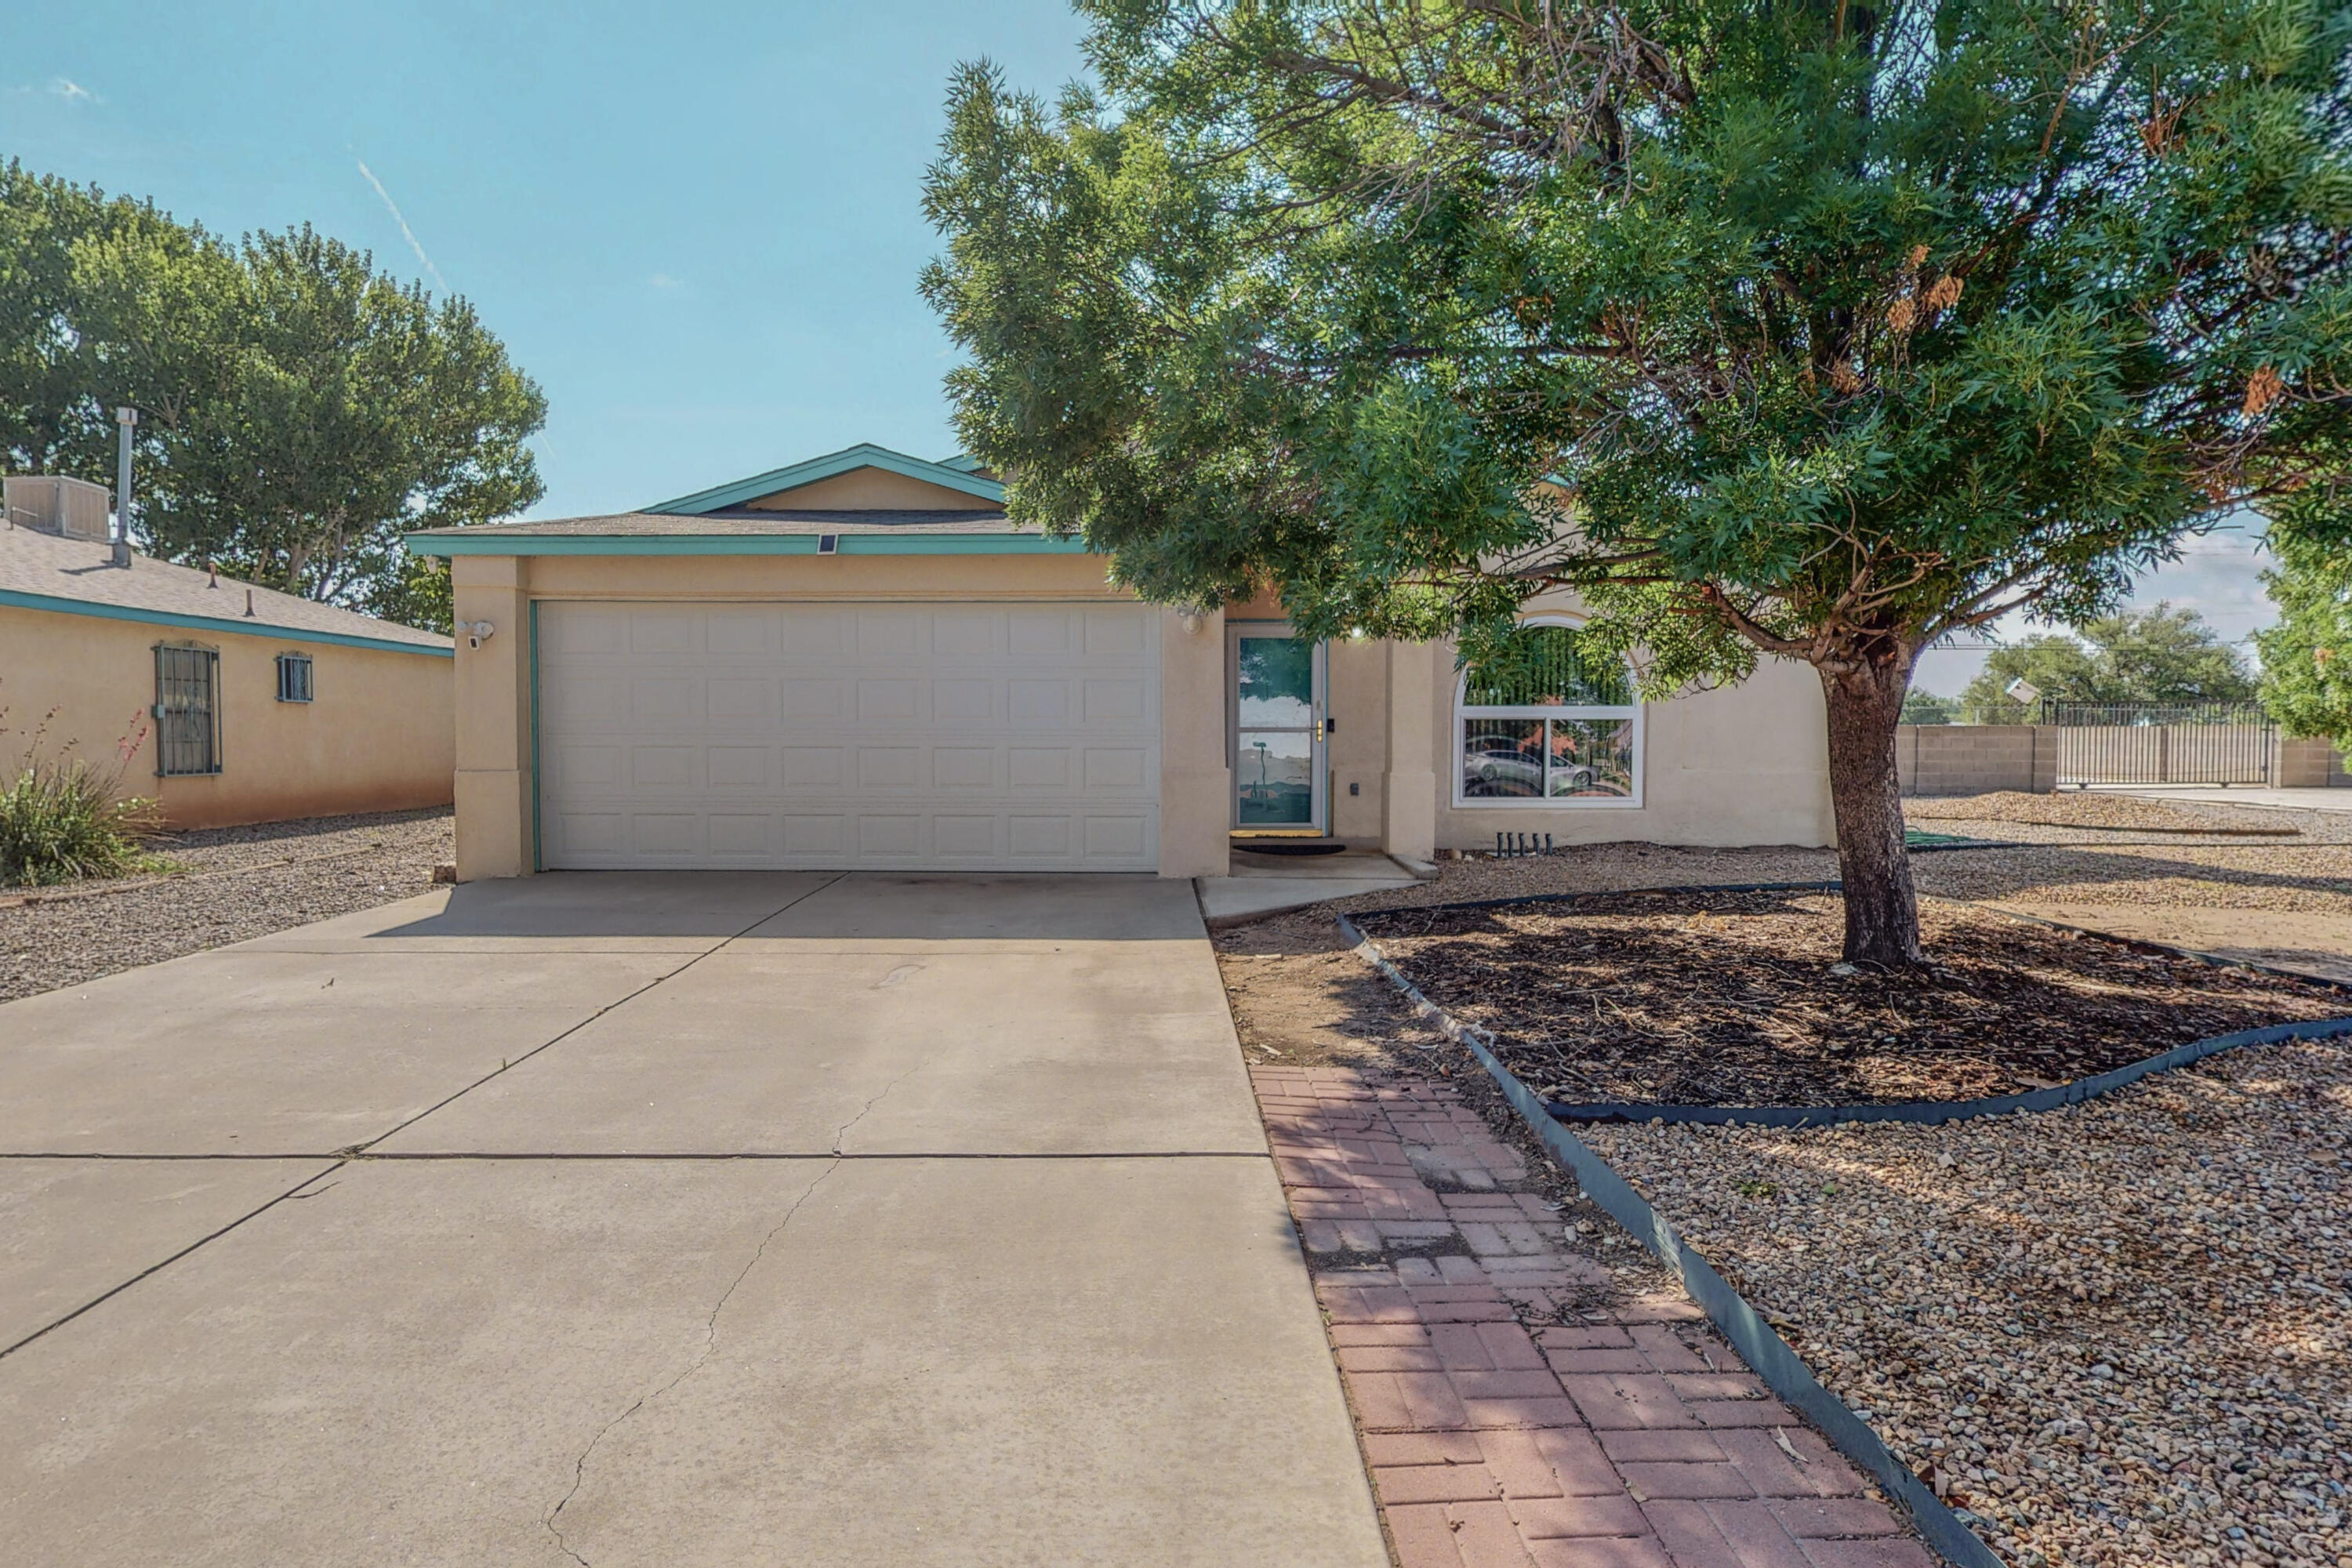 WOW!!! This Home has it all! Designed to meet all your needs and desires in Los Lunas Mountain View Subdivision. Large Open Floor Plan, Handicap Accessible, Updated Bathroom with a Roll in Shower, tile throughout main living areas, Cathedral Ceilings, Walk-In Closets, Refrigerated A/C, Solar Panels (Owned), New Windows, Newer Hot Water Heater and Garage Door. Oversized Lot with Breathtaking Mountain Views, Electric Gate for Backyard Access to a Fully Contained RV Pad with Electric, Water and Sewer Hookup. All appliances convey as well as Ring Camera/Audio. Home is being sold ''As-Is''  Seller will make no repairs. Quiet, family friendly neighborhood, close to shopping and entertainment. Don't wait! Schedule your showing today!